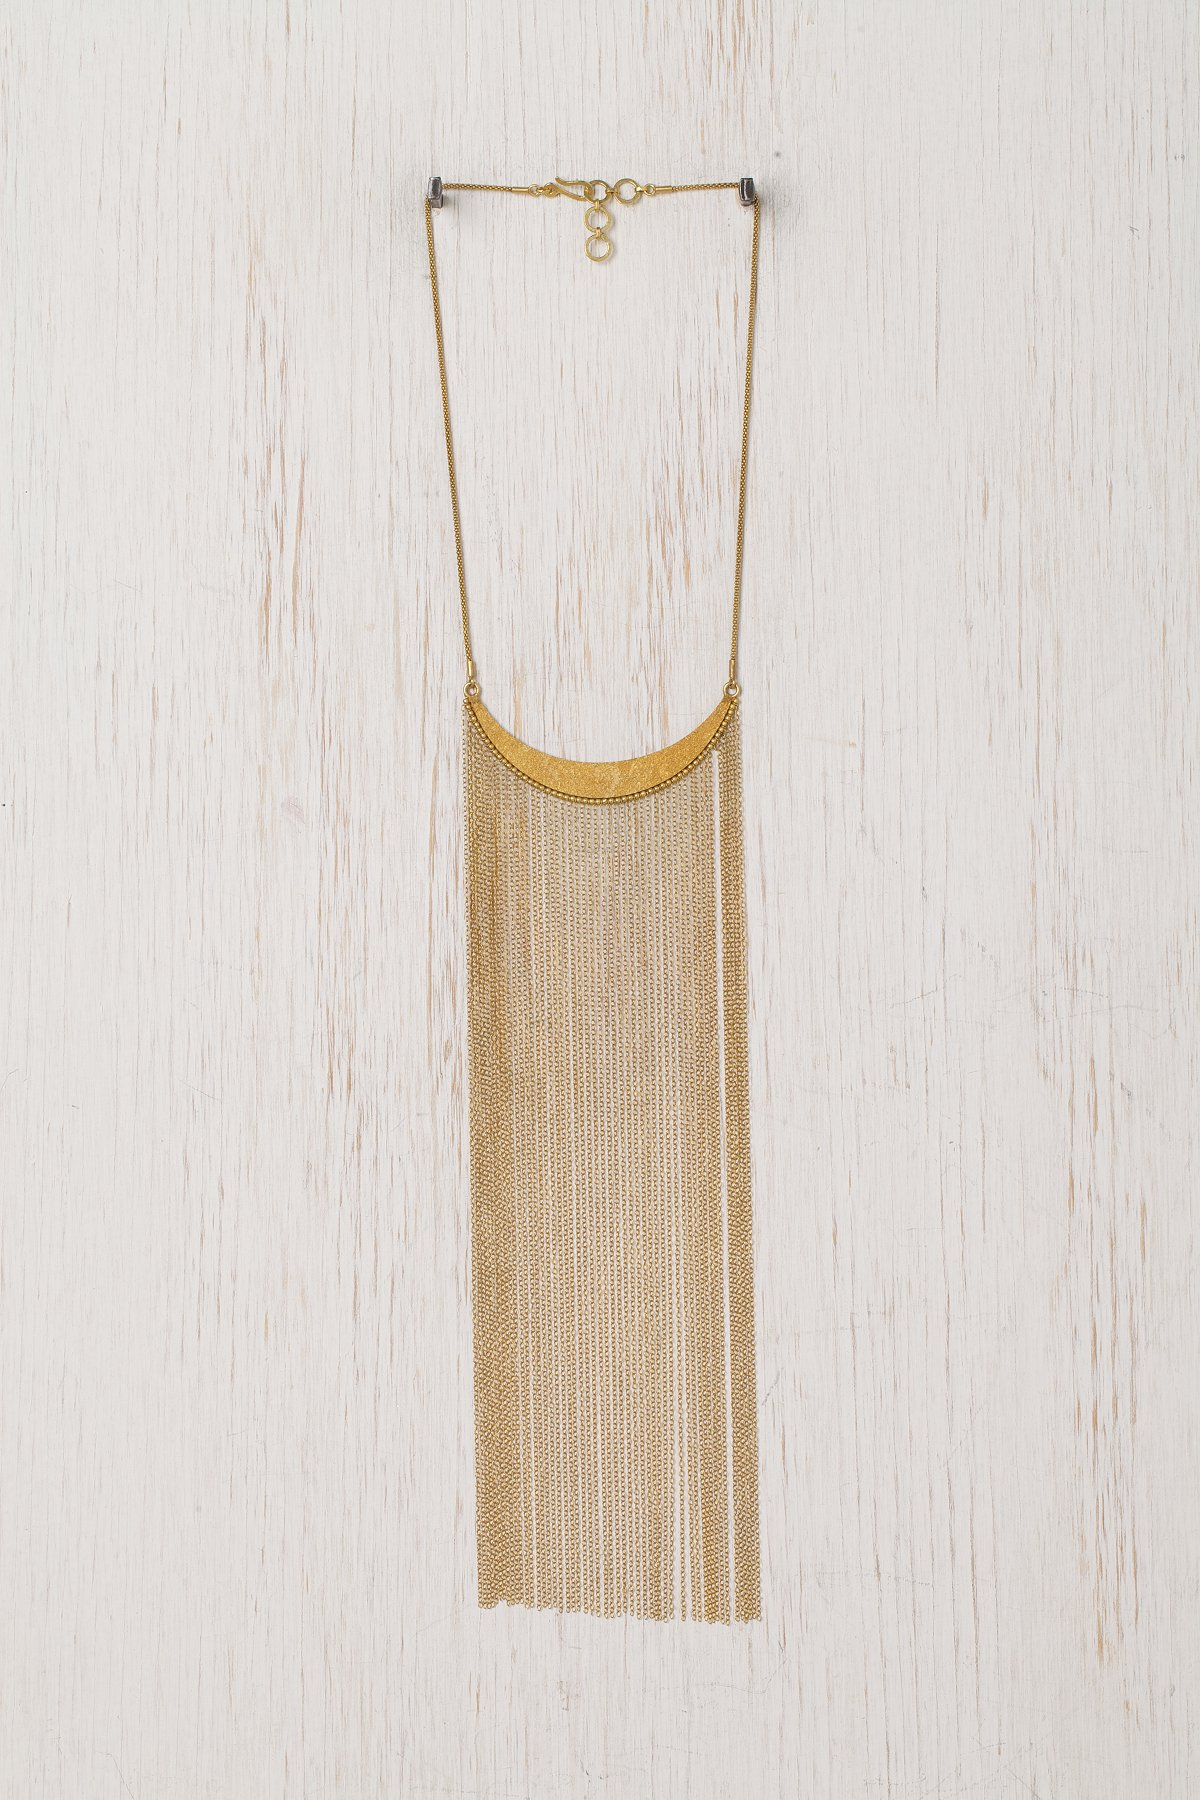 Crest Fringe Necklace